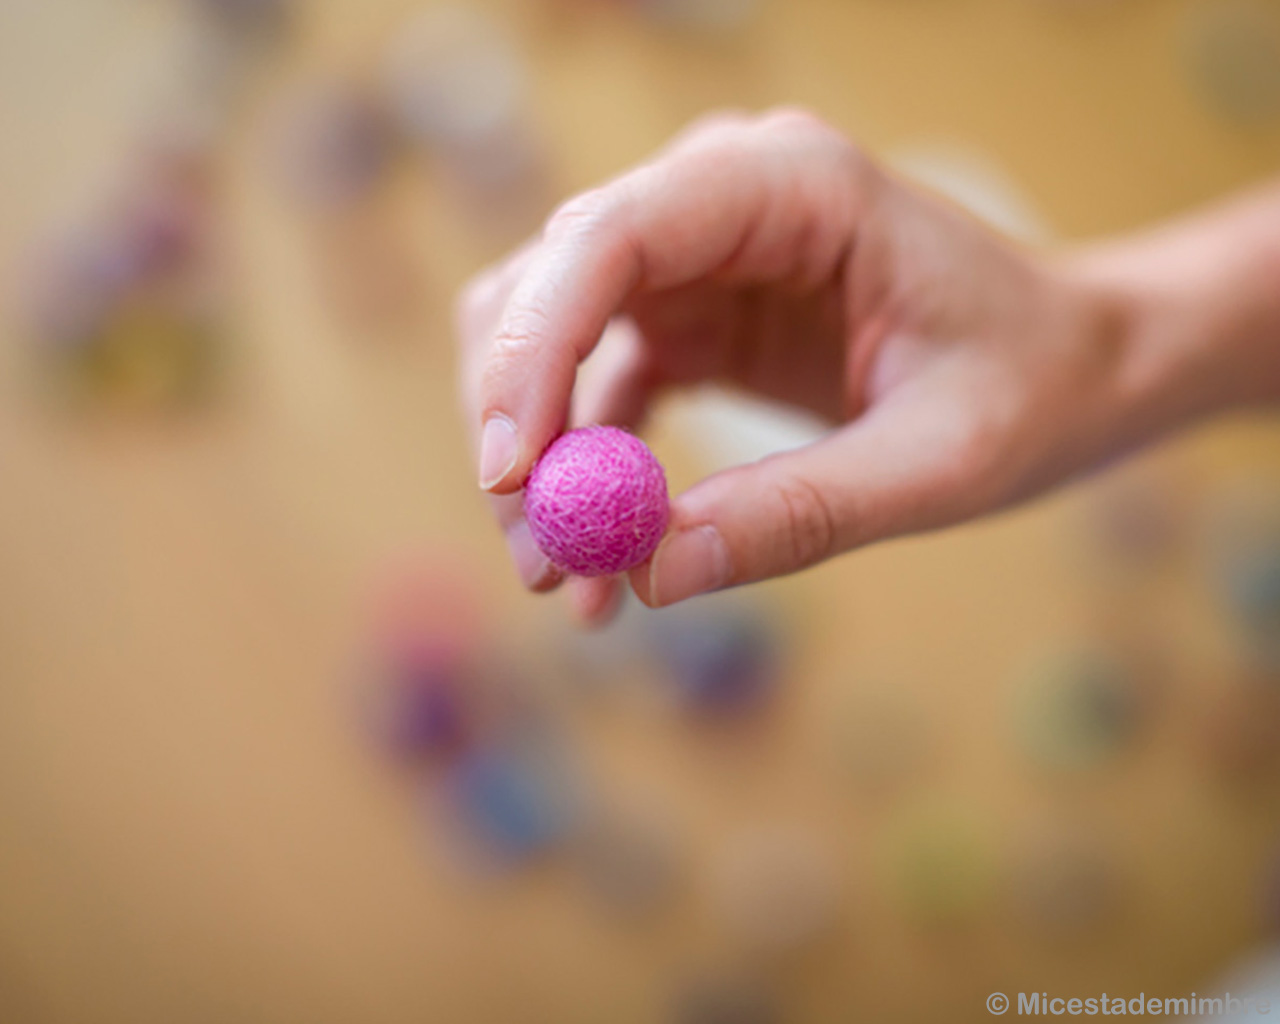 handmade one piece of felt ball in hand made in nepal rugs